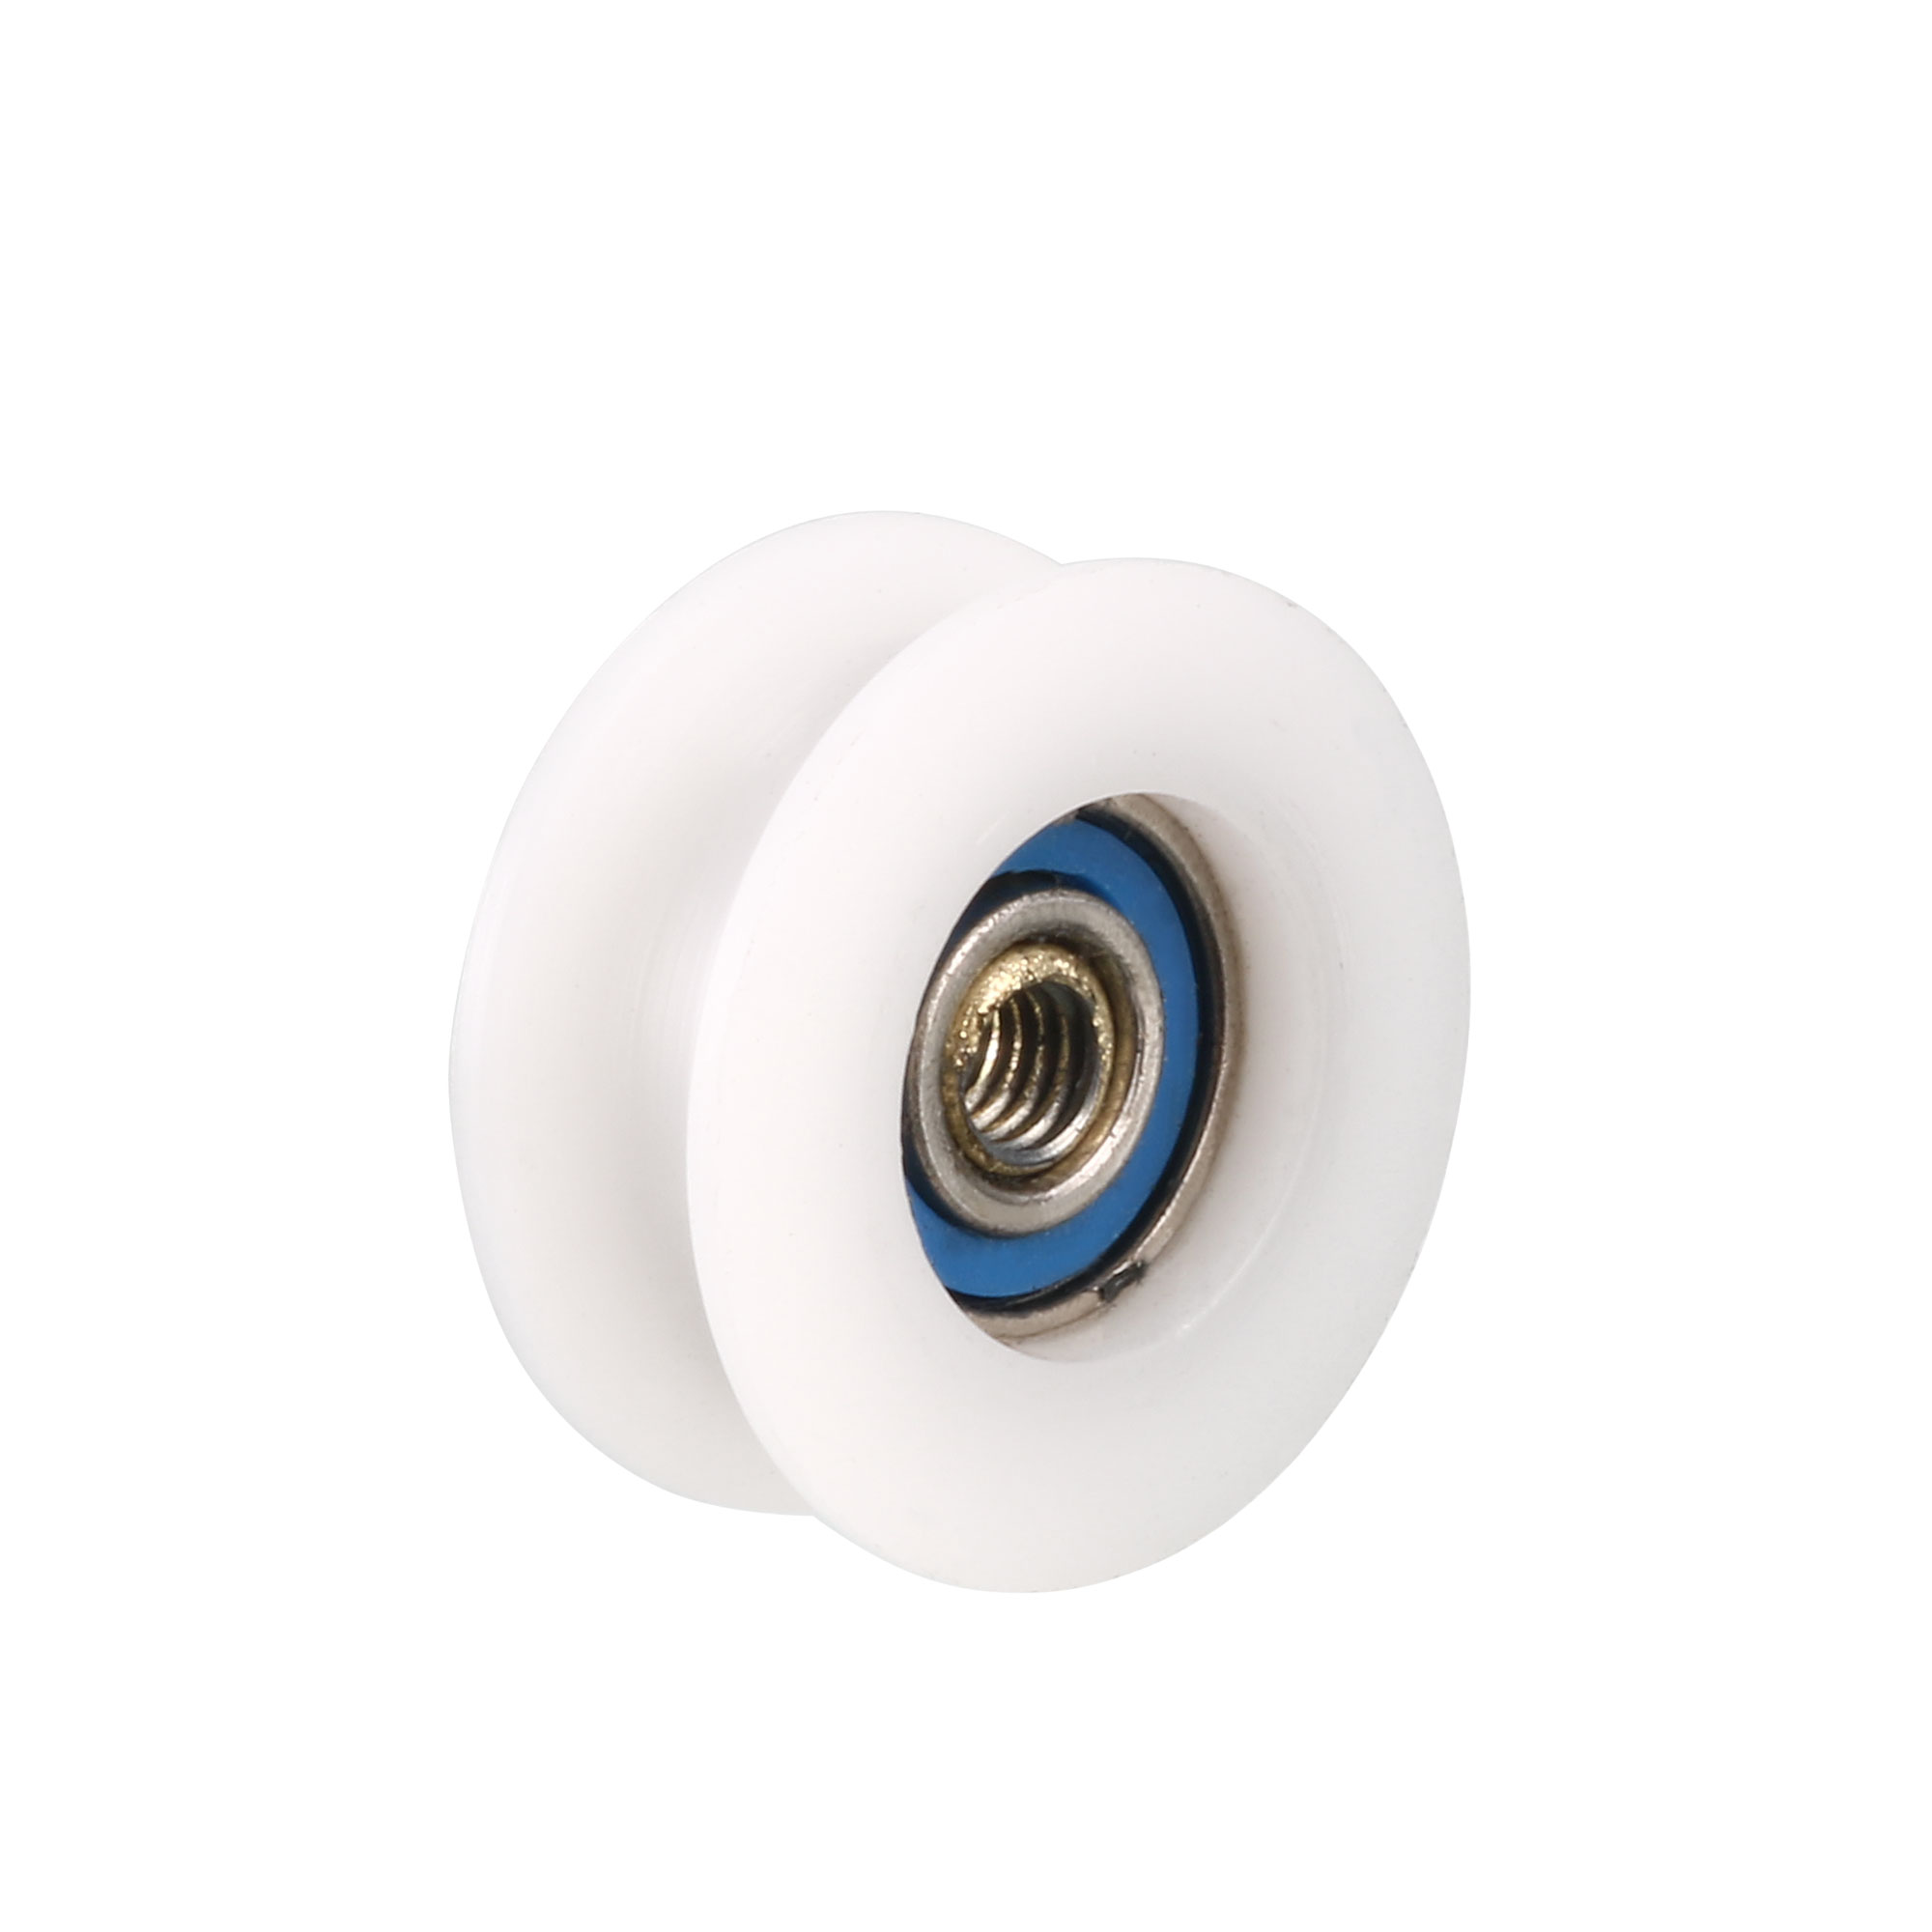 Round Groove Nylon Pulley Wheels Roller 5 Pcs for 5mm Rope